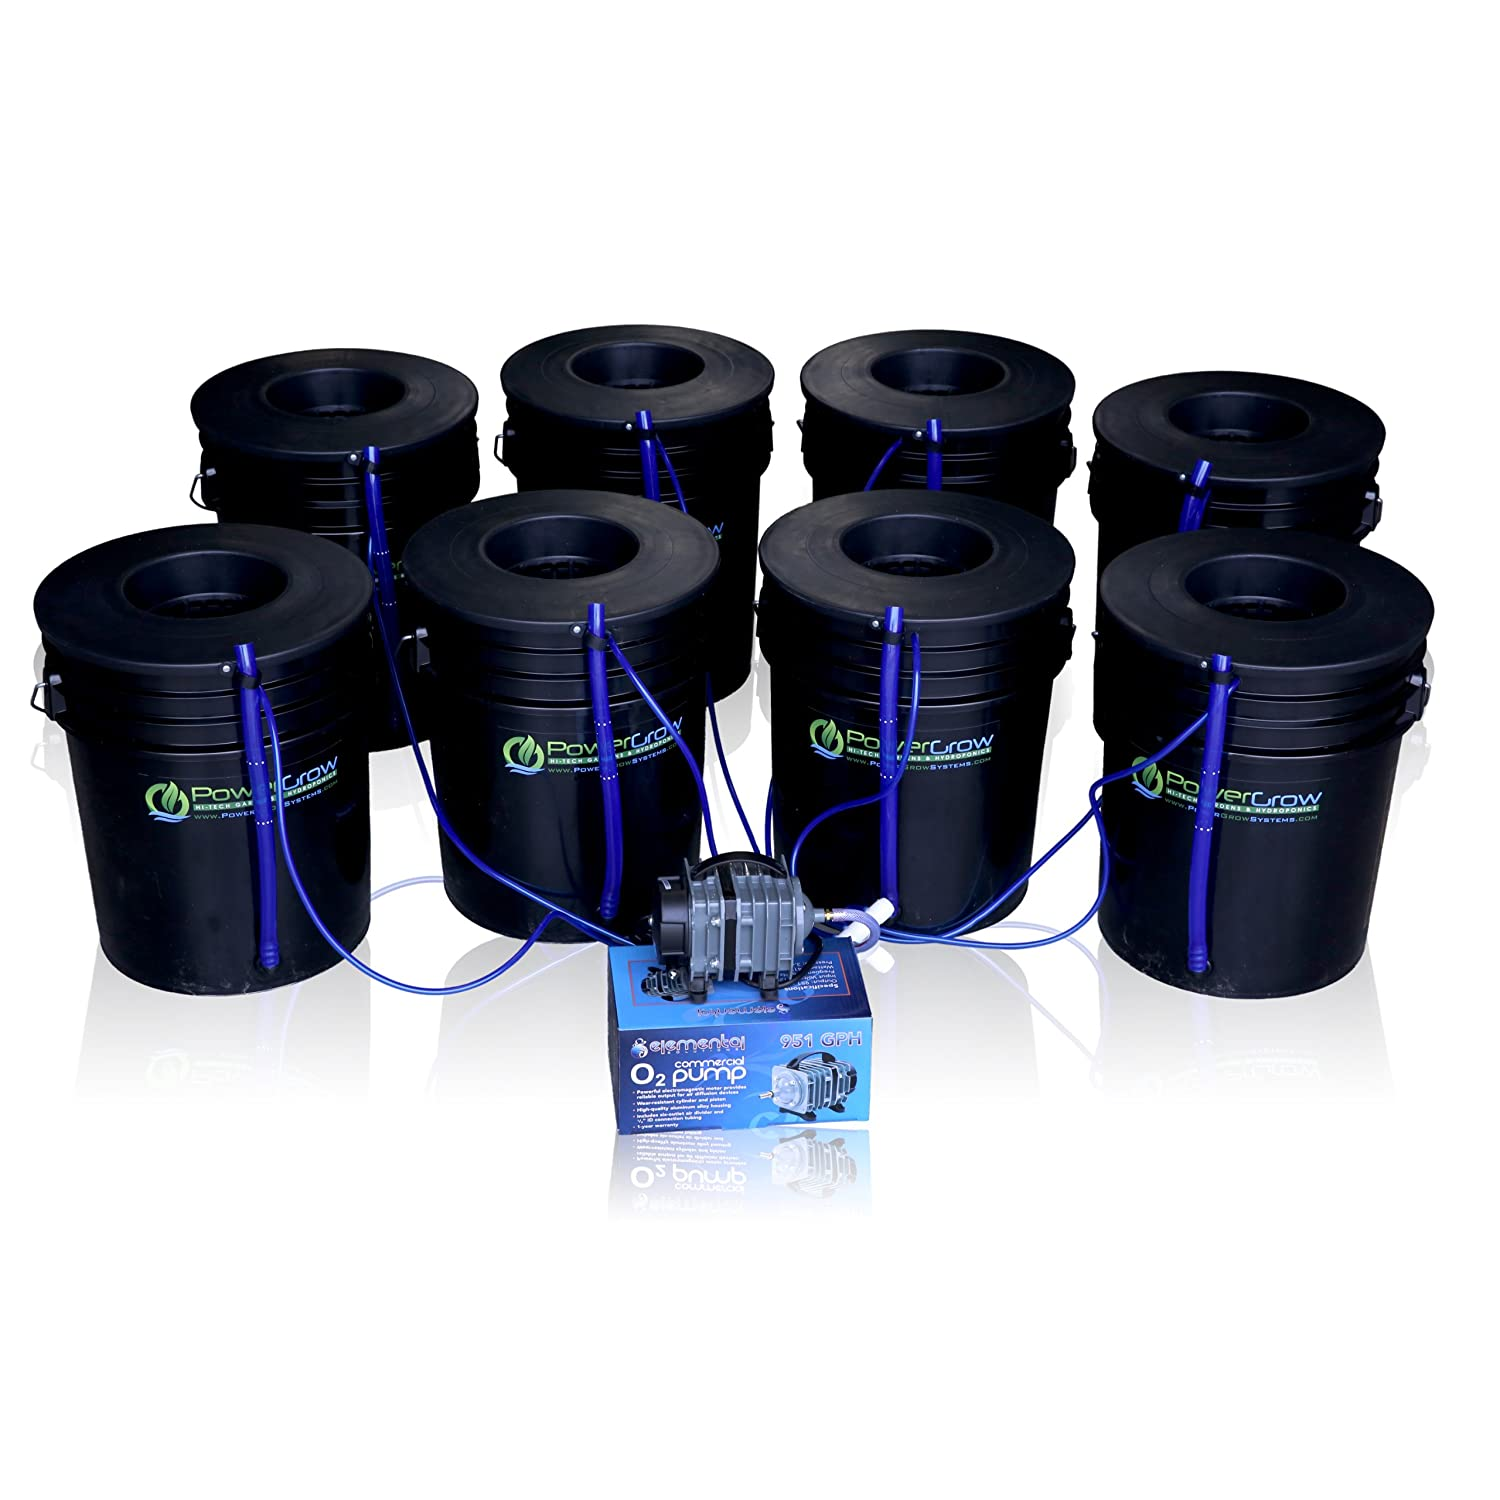 PowerGrow DWC 8 Bucket Kit – 6-inch Lids